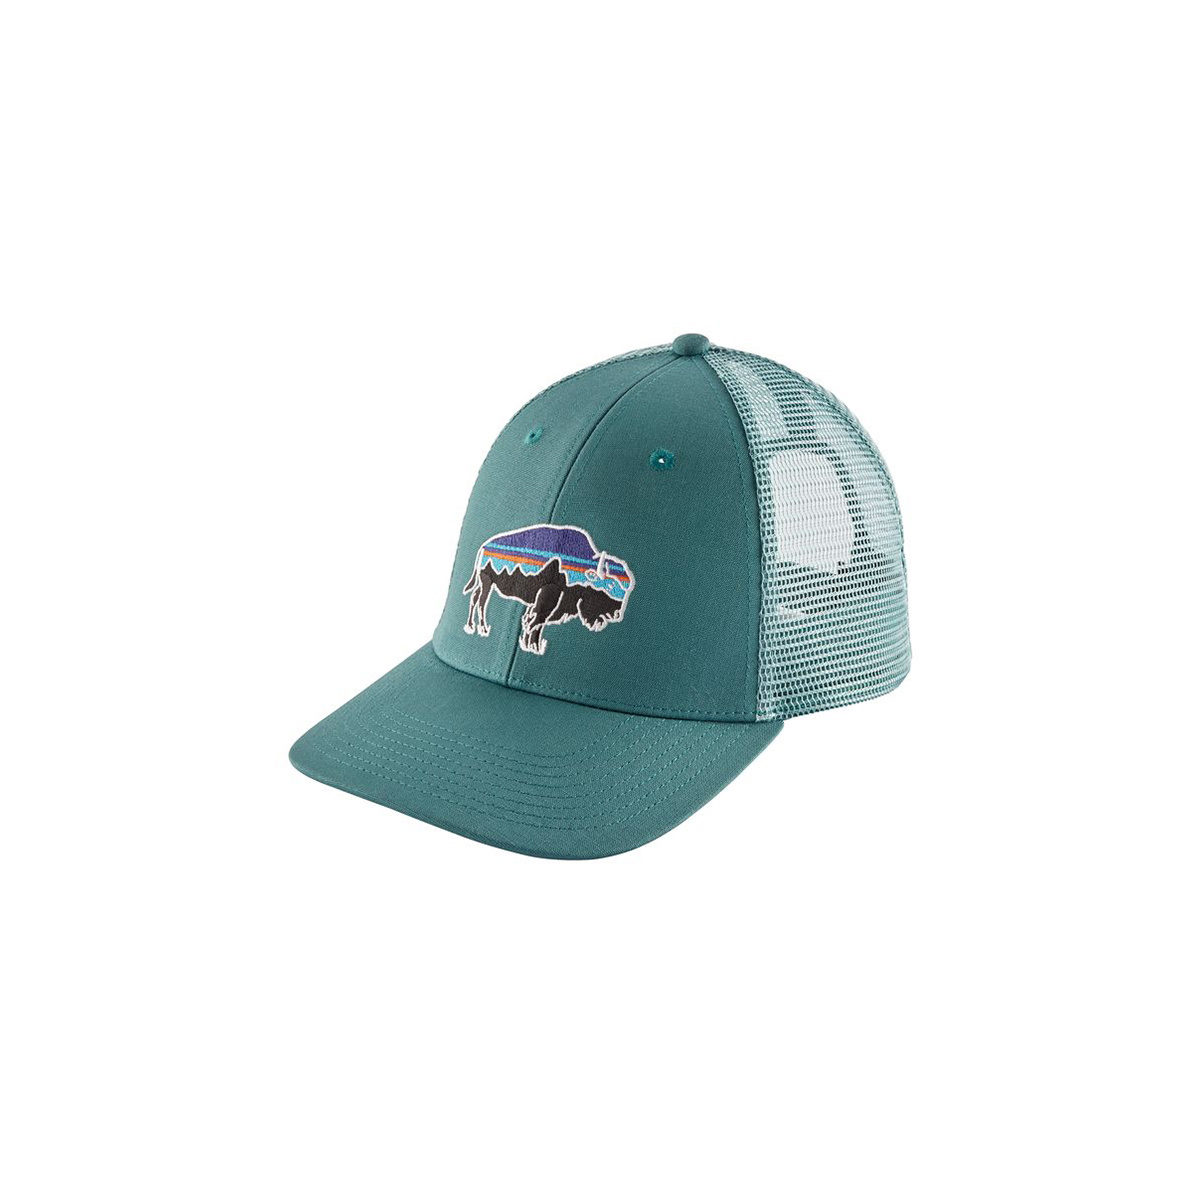 08e1b1ae Patagonia Fitz Roy Bison LoPro Trucker Hat - Gearhead Outfitters